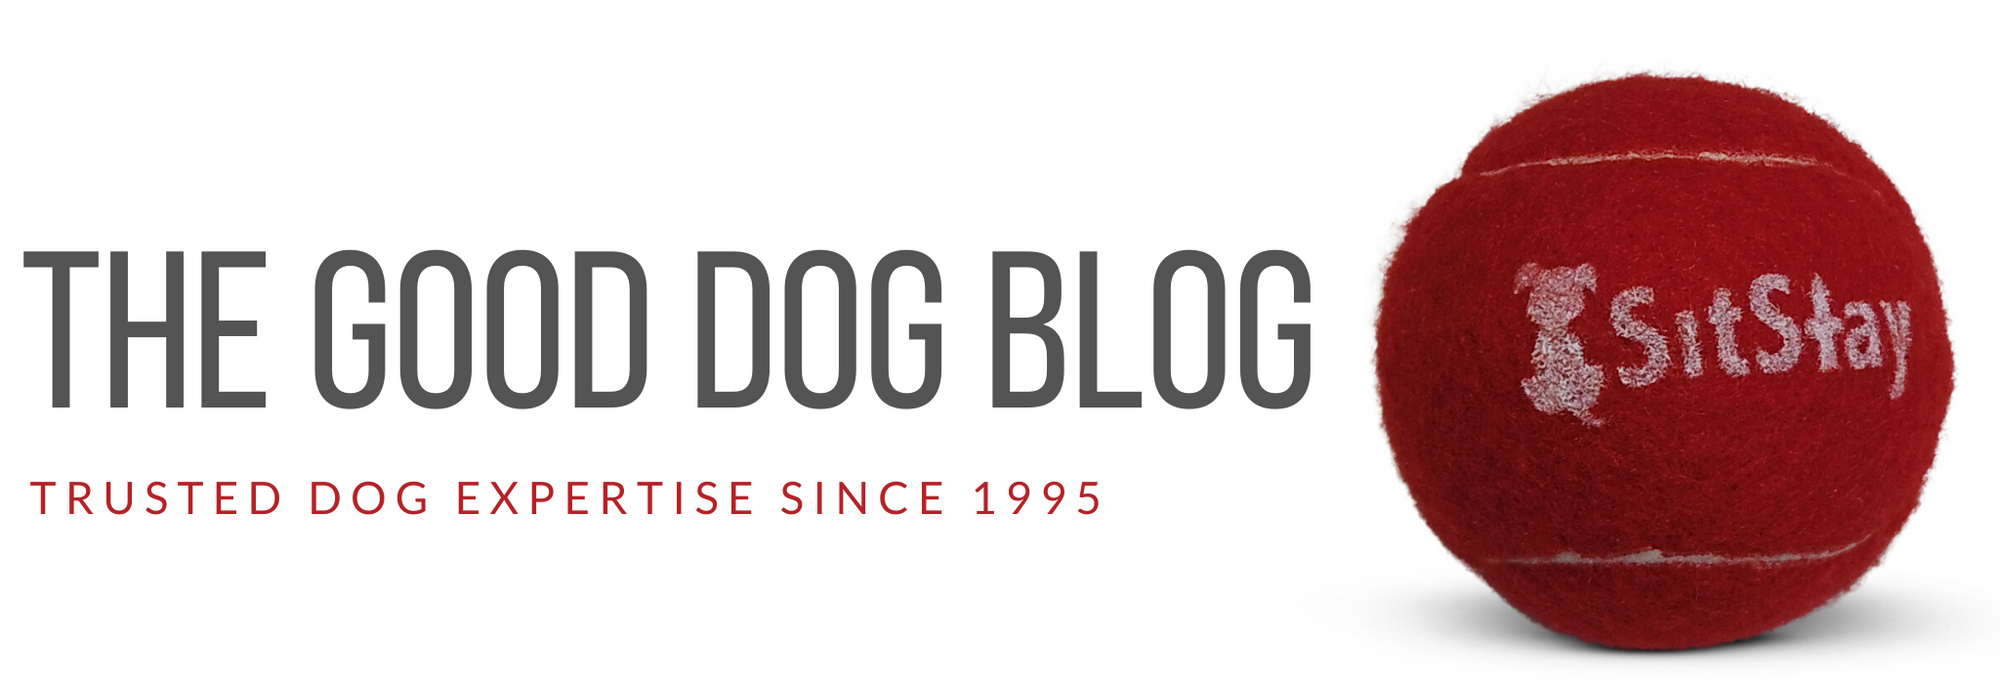 The Good Dog Blog - Trust Dog Expertise Since 1995 - SitStay